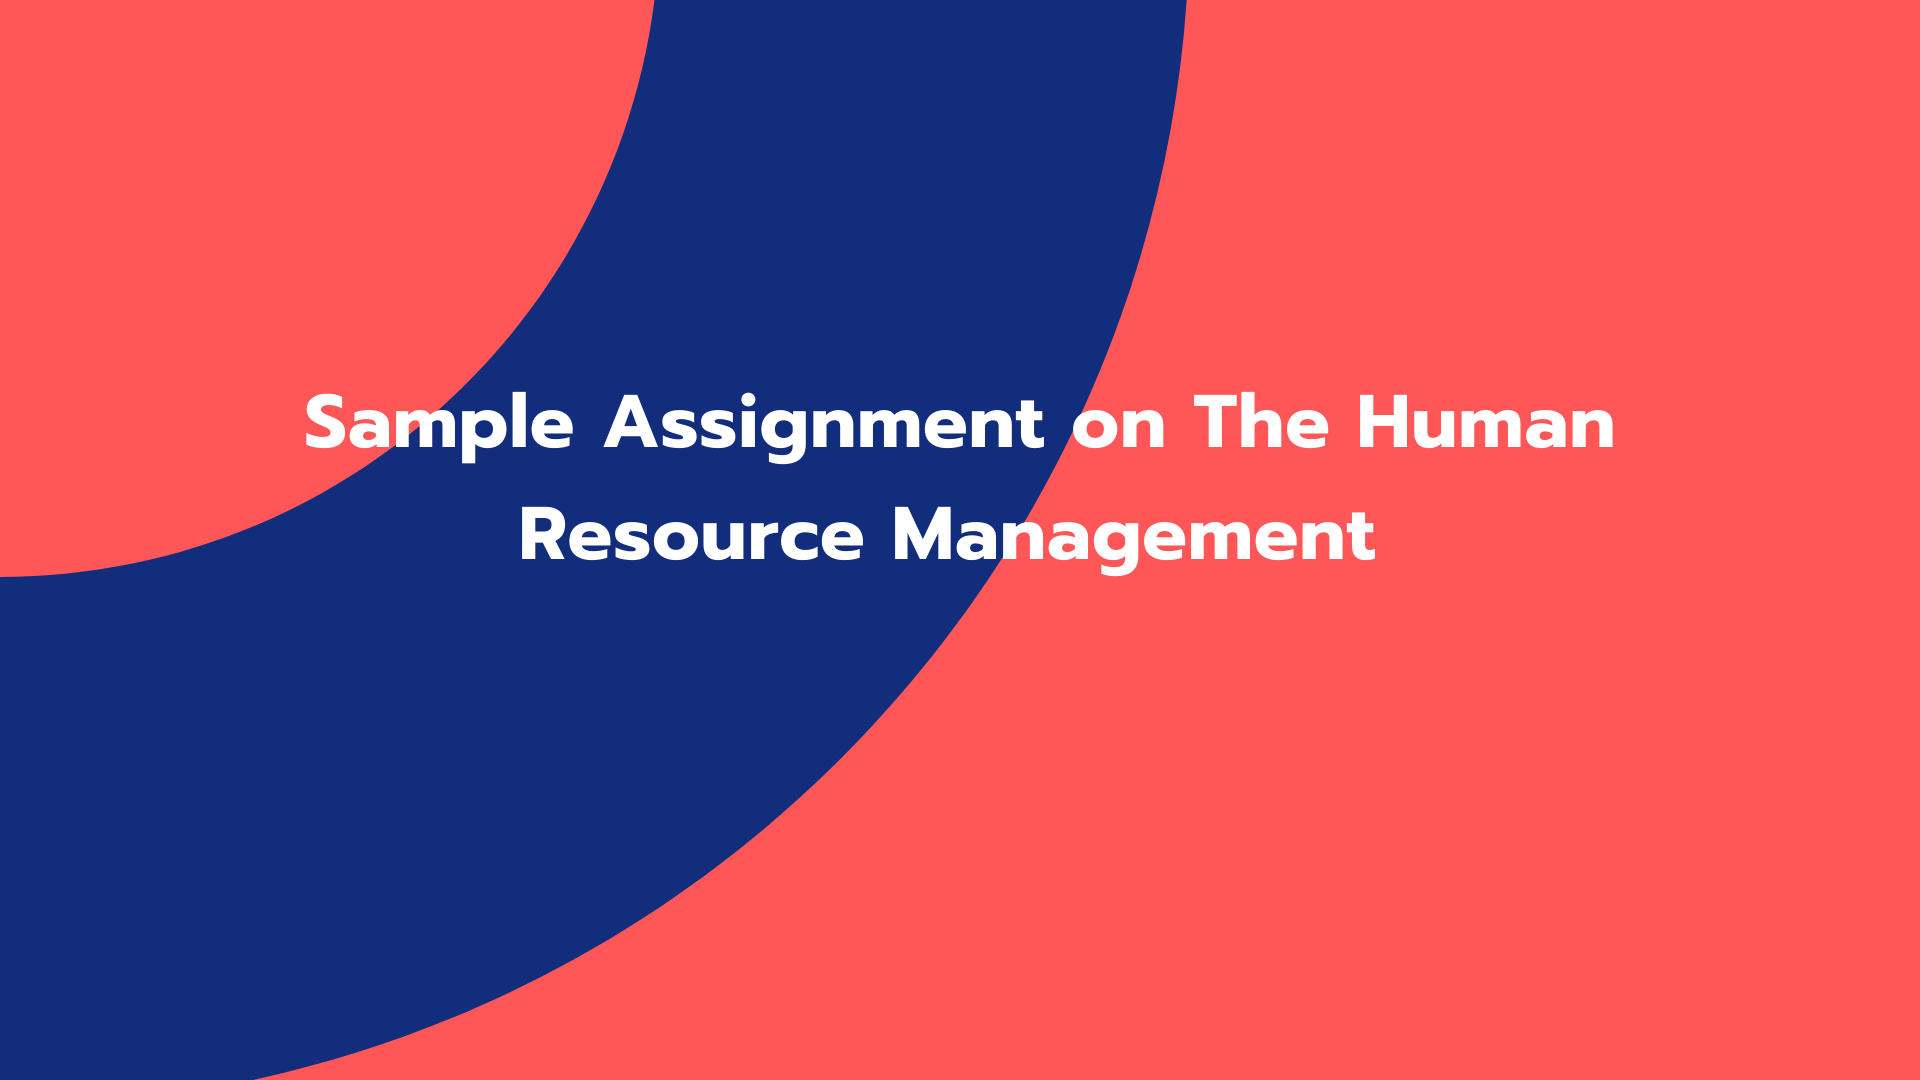 Sample Assignment on The Human Resource Management